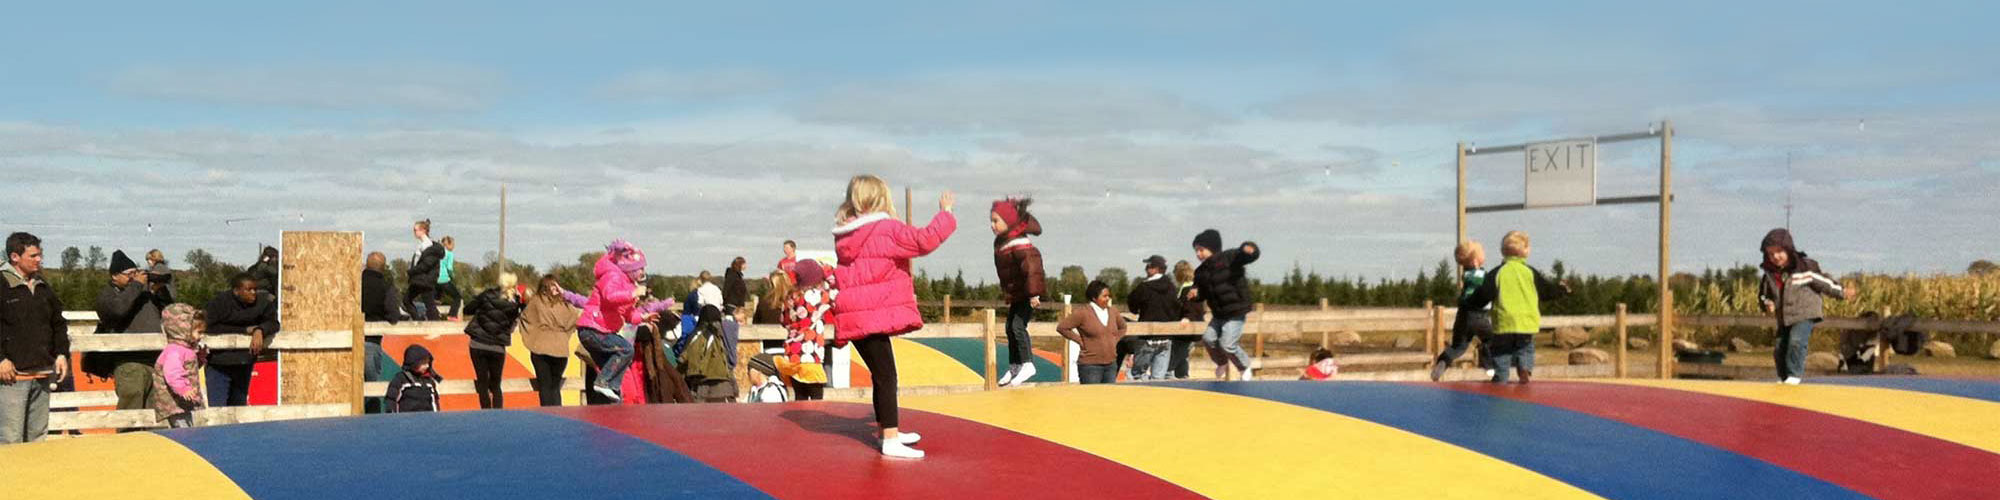 Tons of Family Fun is in store at the fall fun Richardson Adventure Farm